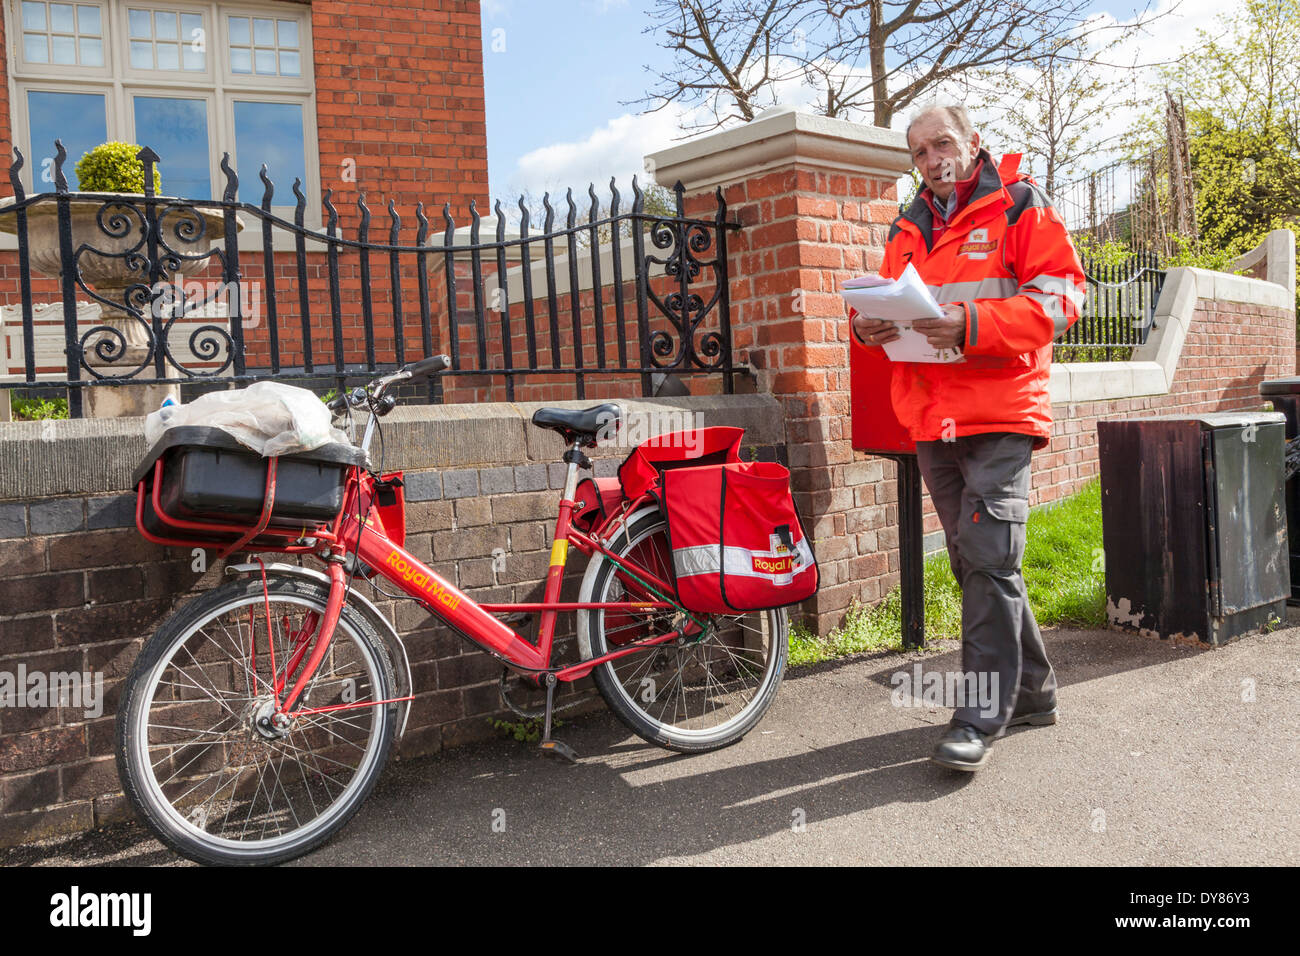 Royal Mail postman with bicycle delivering post in the village of Plumtree, Nottinghamshire, England, UK - Stock Image